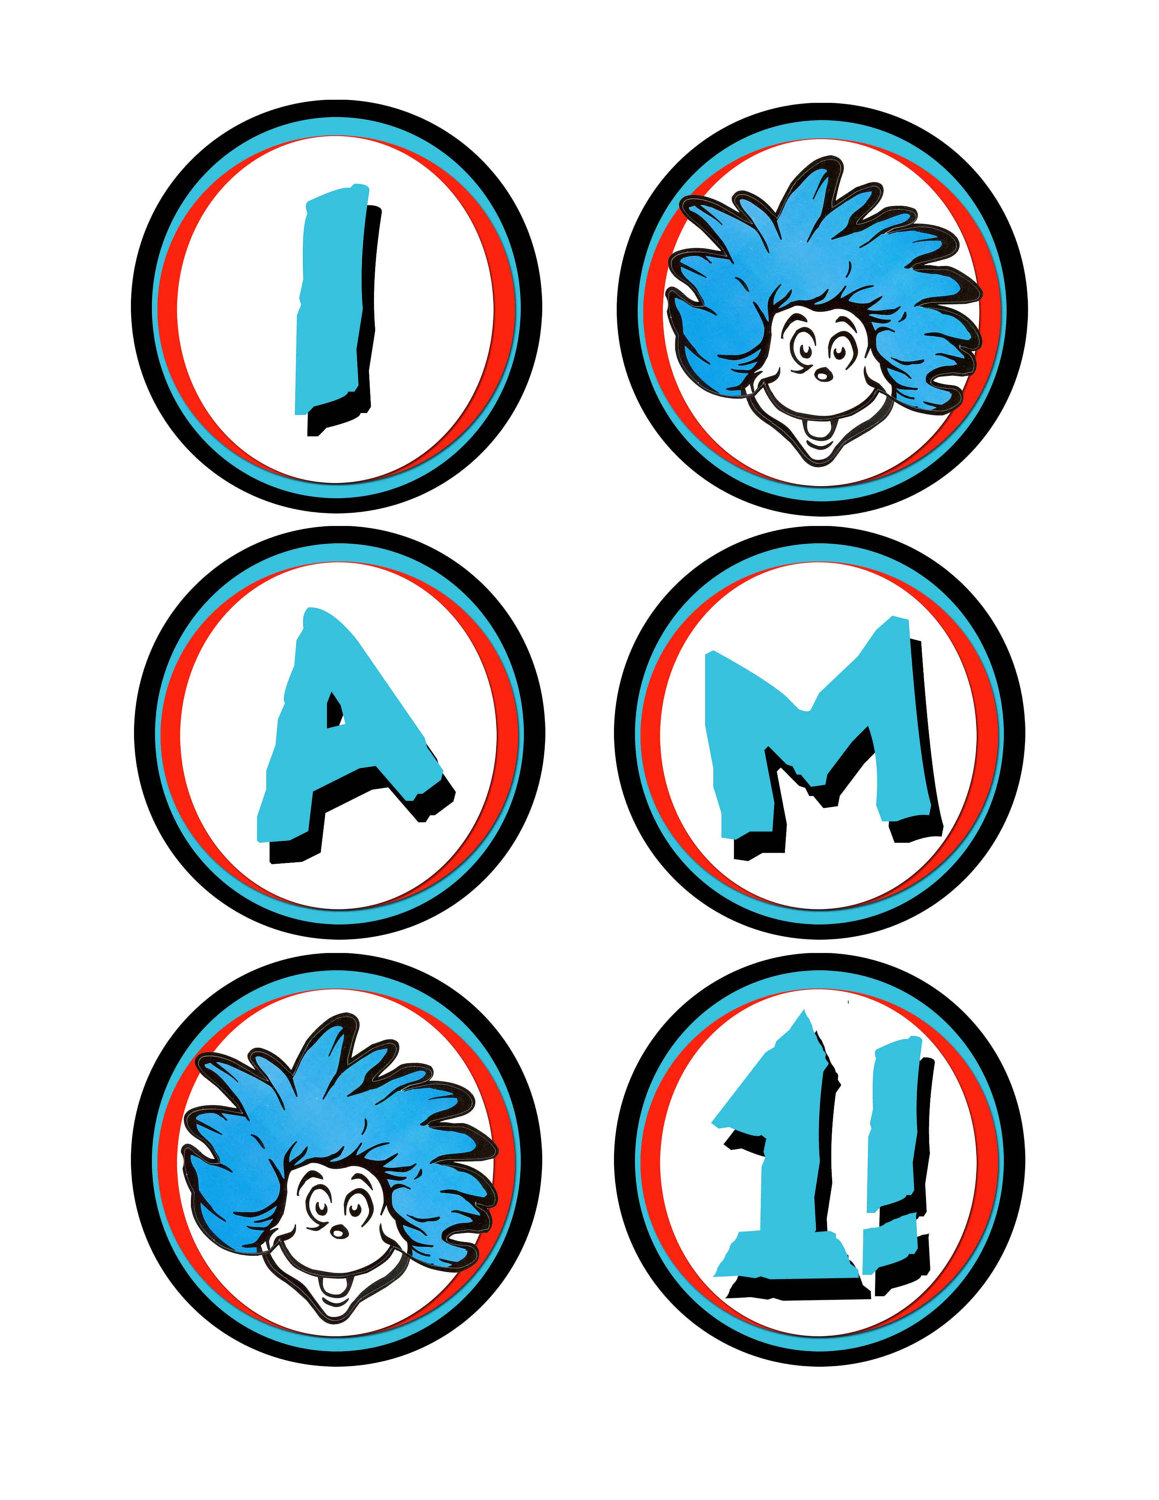 Dr seuss clipart thing 1 and thing 2 clip free stock Dr. Seuss Thing 1 Clipart - Clipart Kid clip free stock